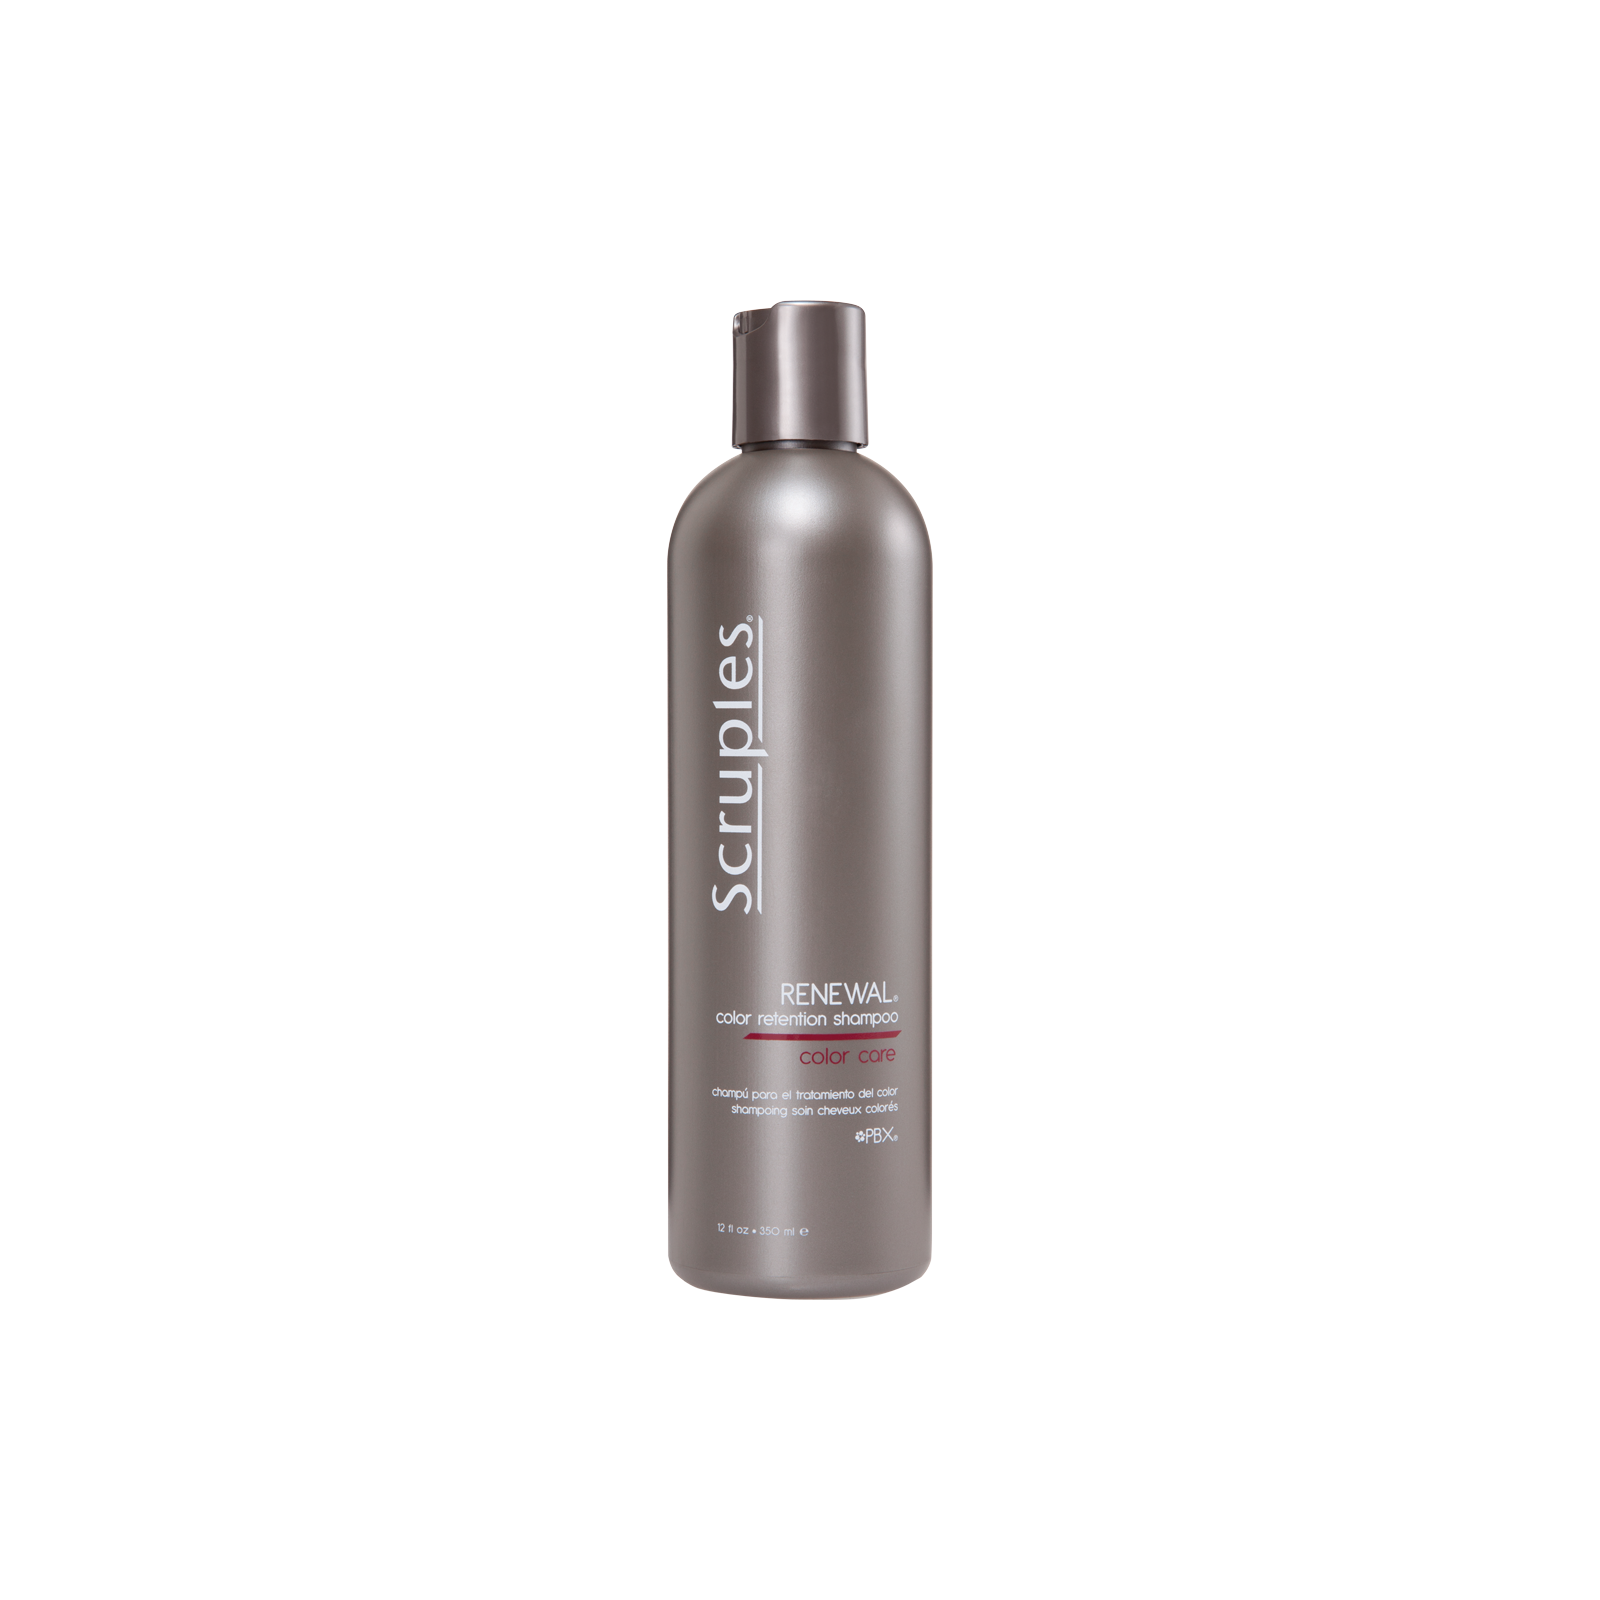 Renewal Color Retention Shampoo